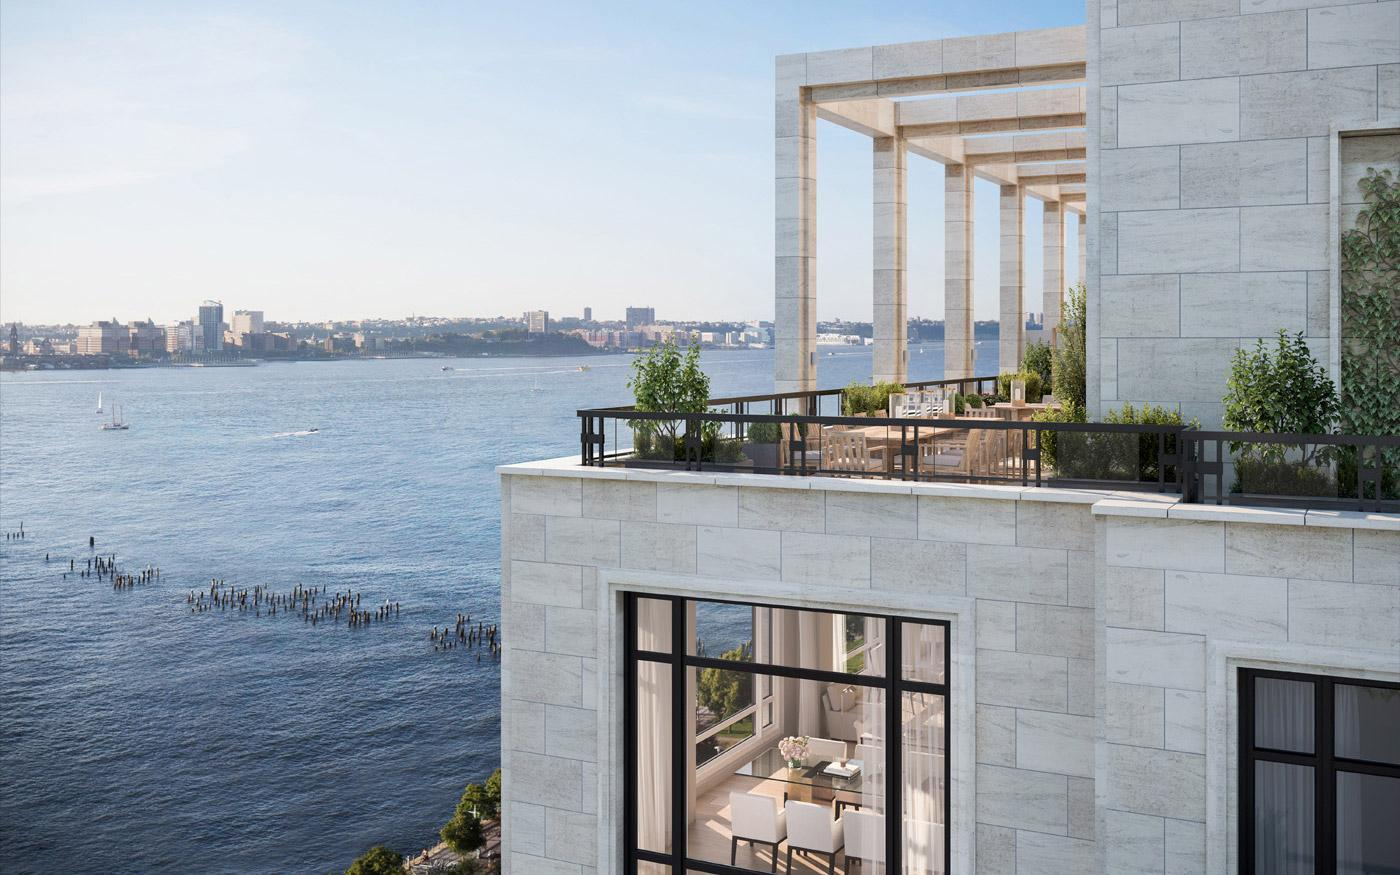 Lewis Hamilton's new home comes with amazing views of the Hudson